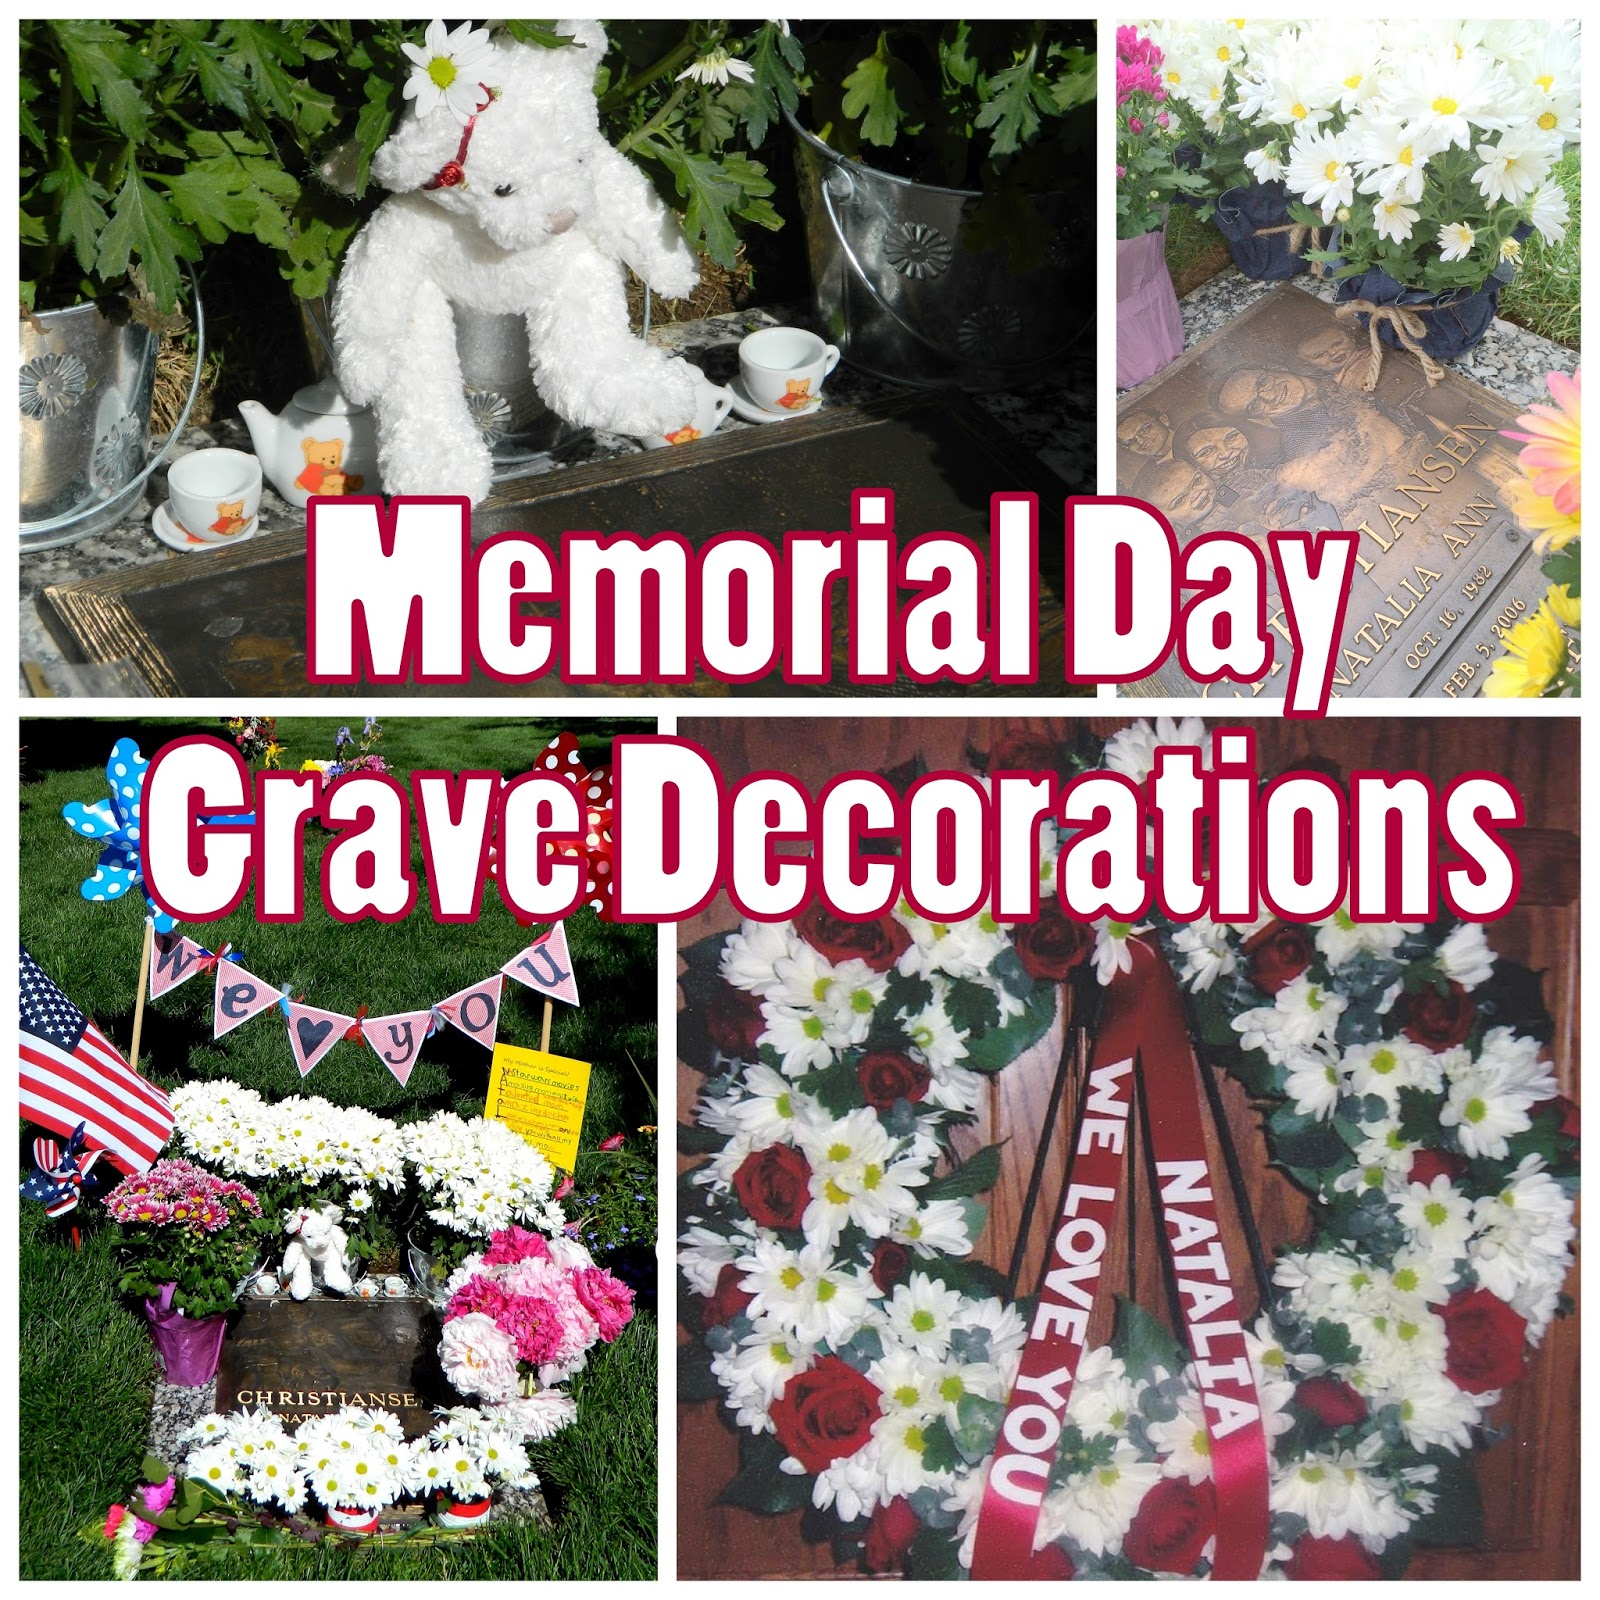 Createjoy2day memorial day personalizing the decorations for Decoration day